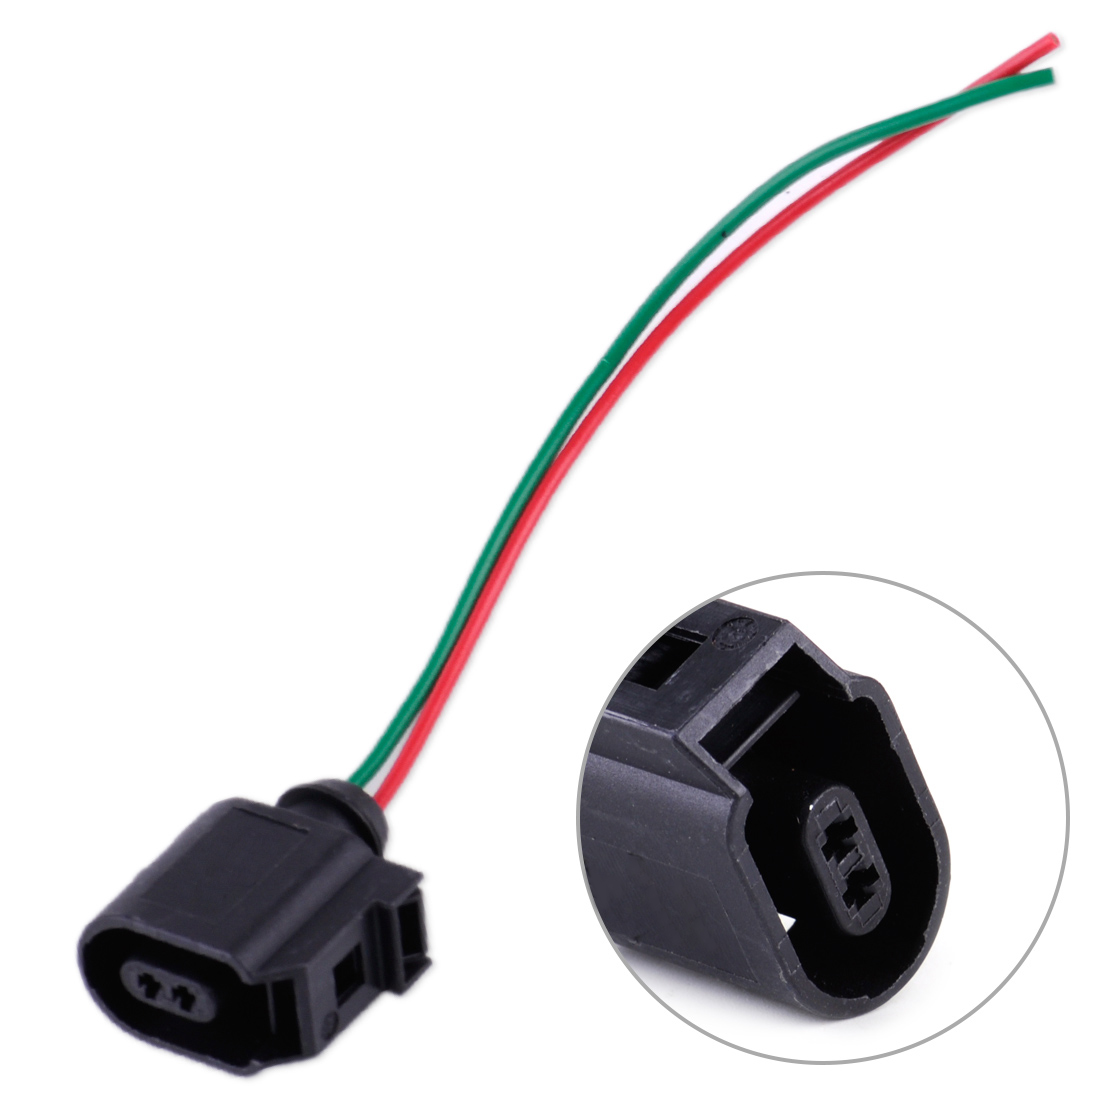 hight resolution of details about abs sensor wiring pigtail plug connector fit for vw passat golf jetta audi a3